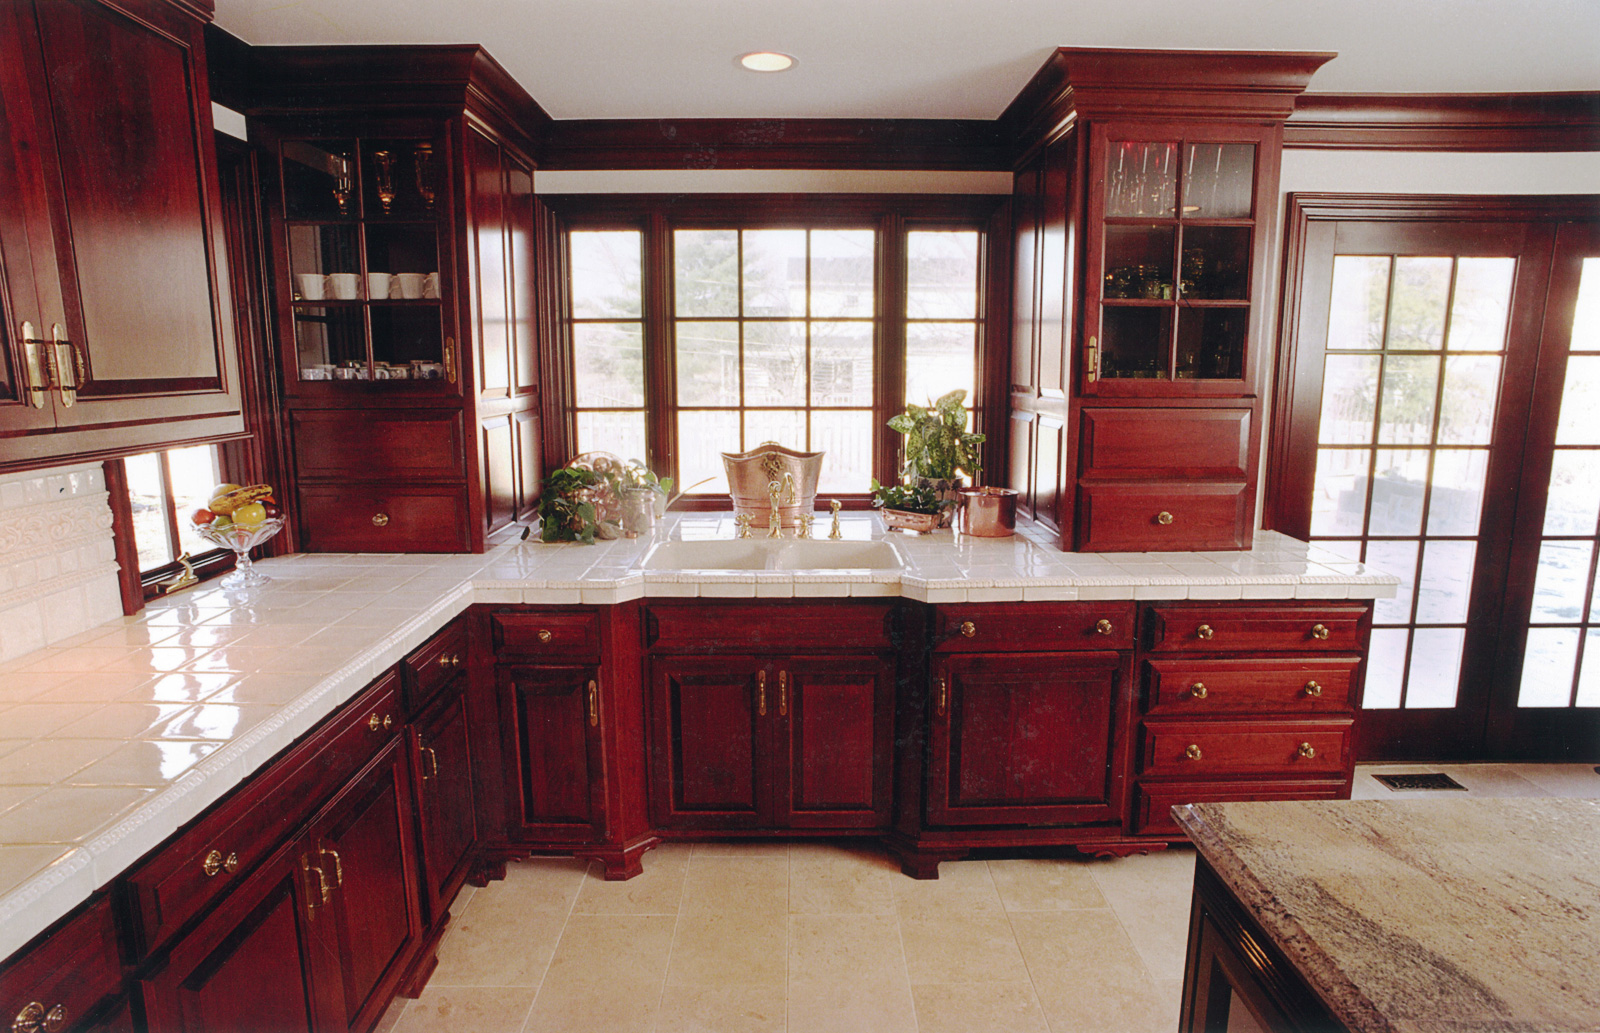 Cherrywood Kitchen with Tile Countertops made in Central Ohio